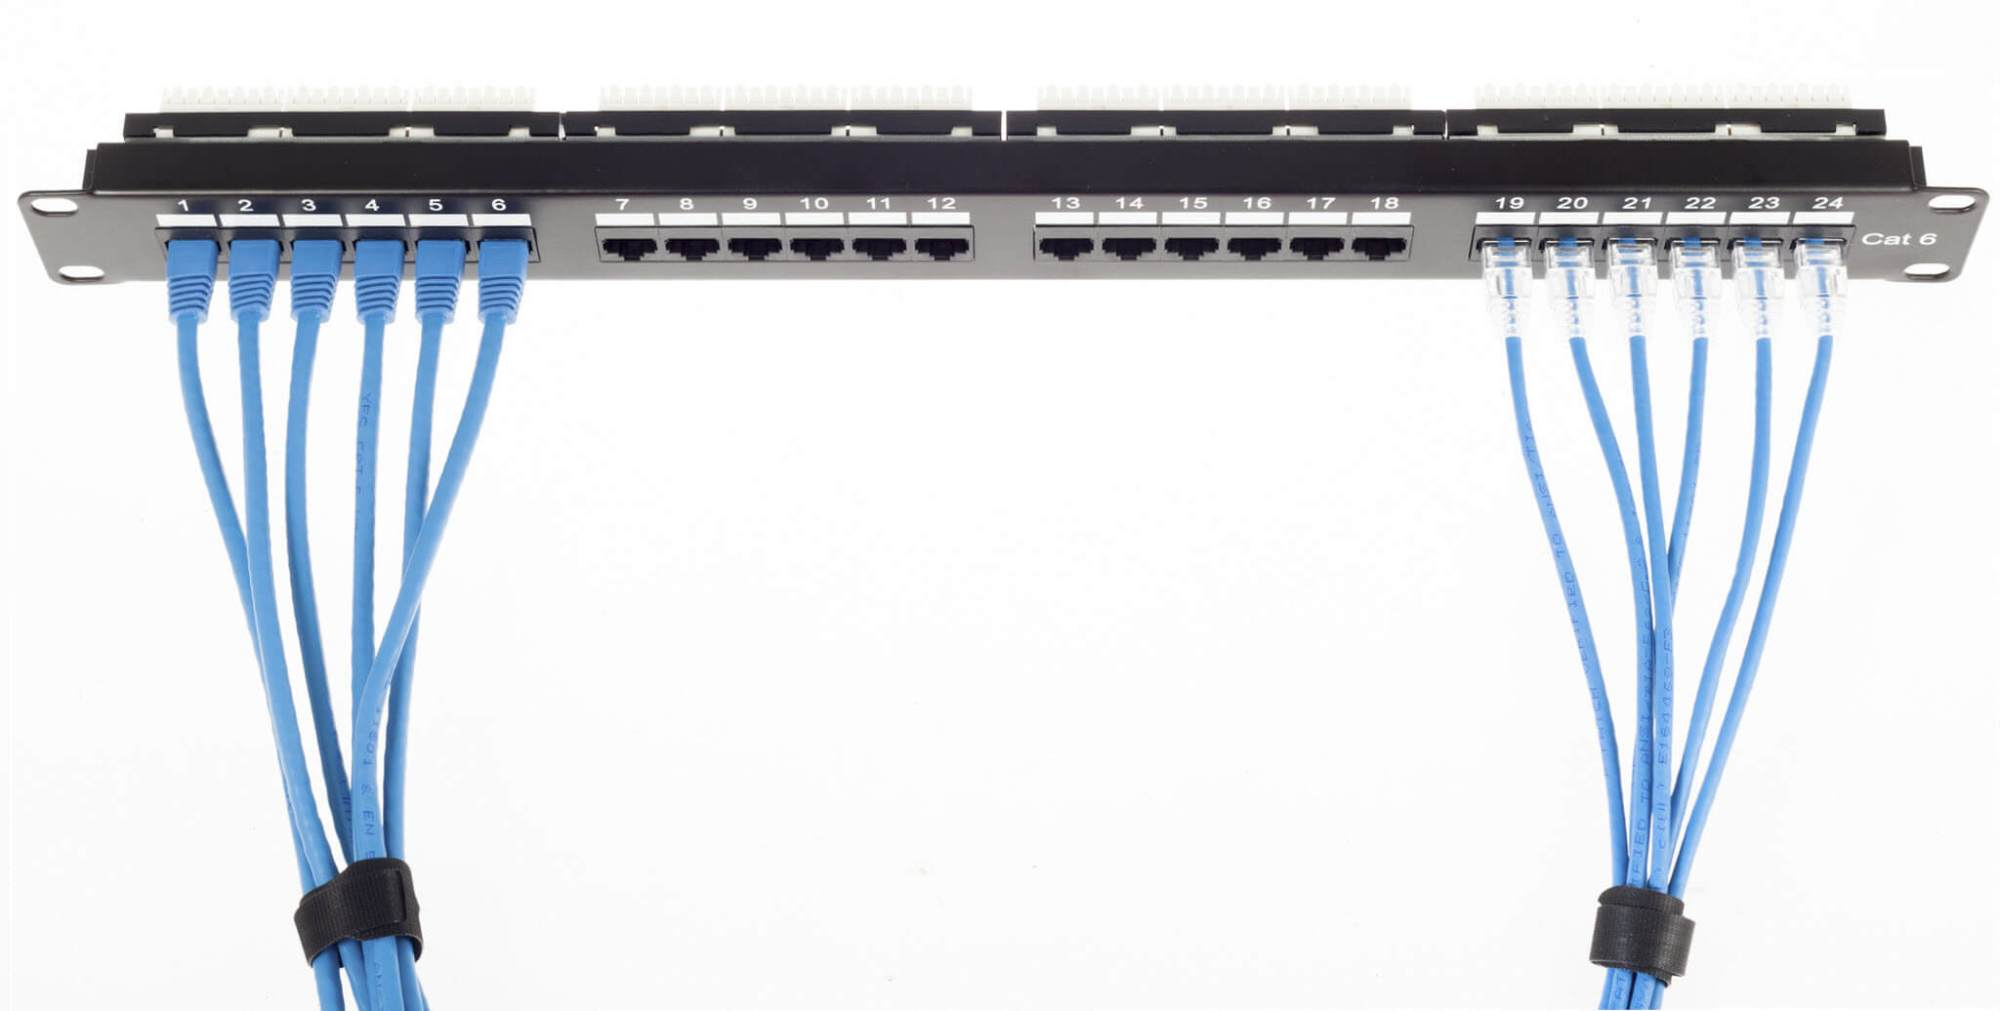 hight resolution of the slim booted cat6 ethernet cables come in our 5 most popular colors and 5 top sizes to meet the needs you have for your business and network setup